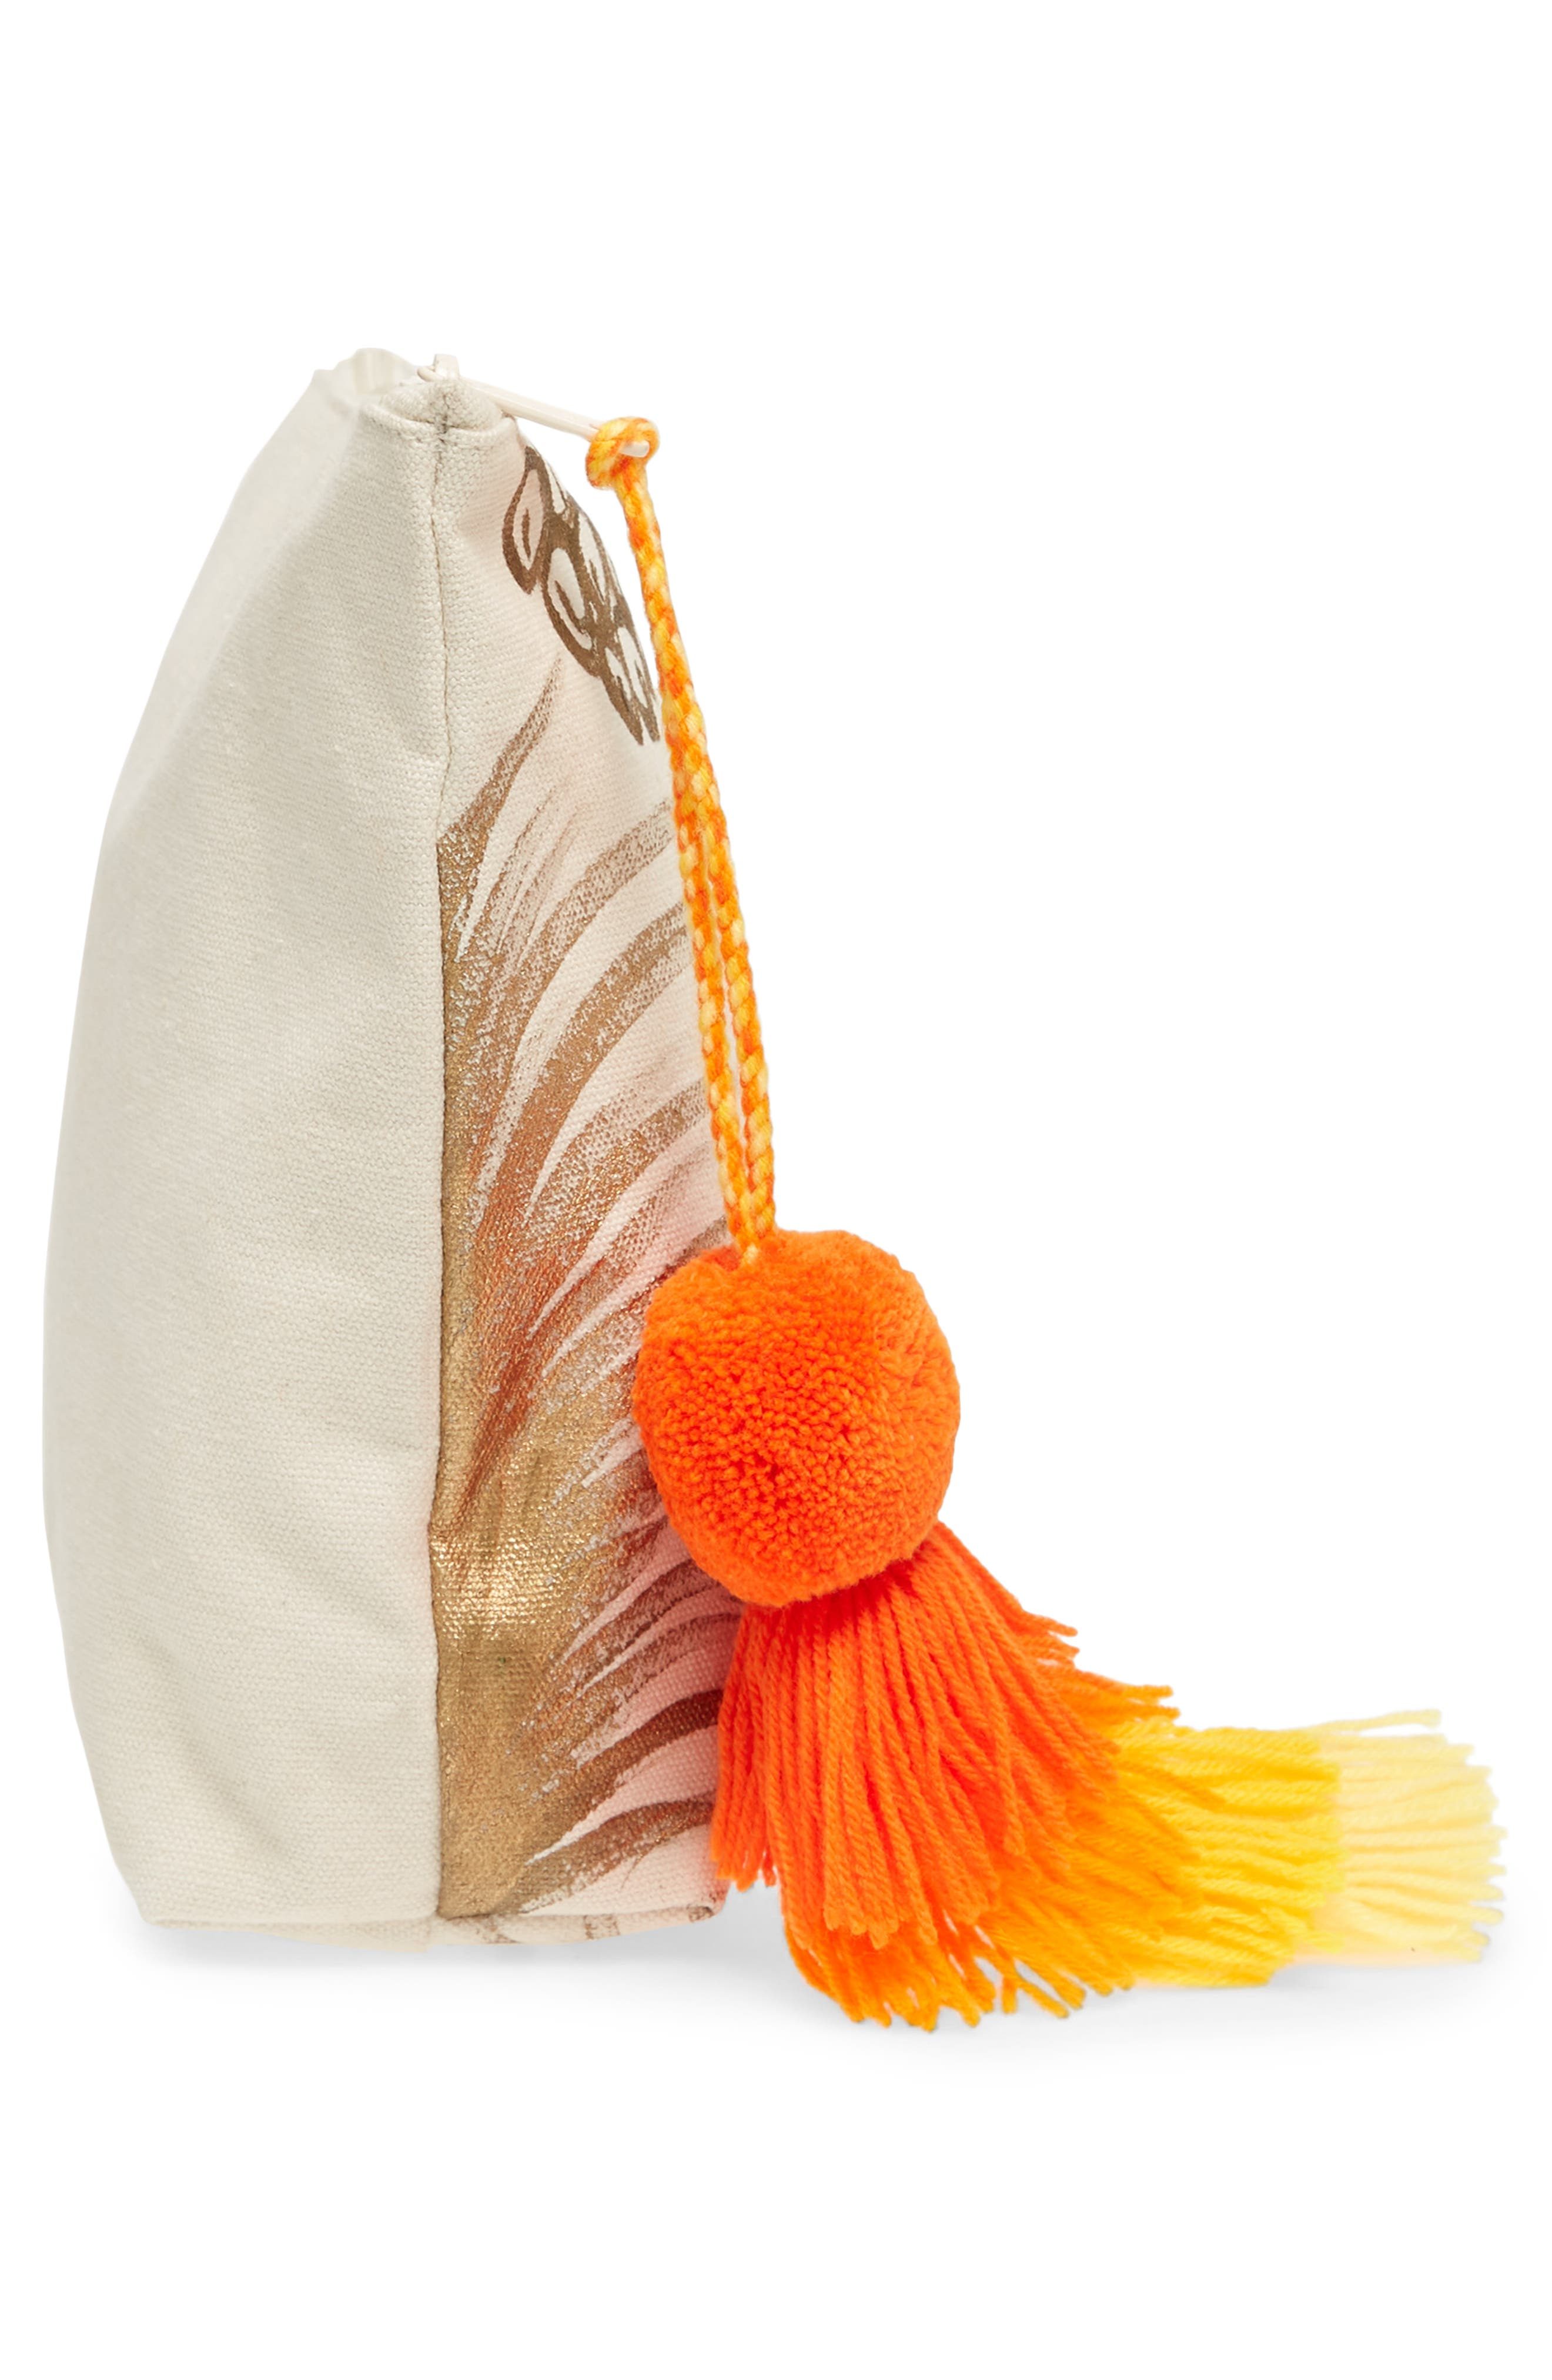 Tropicana Tassel Cosmetic Pouch,                             Alternate thumbnail 4, color,                             GOLD